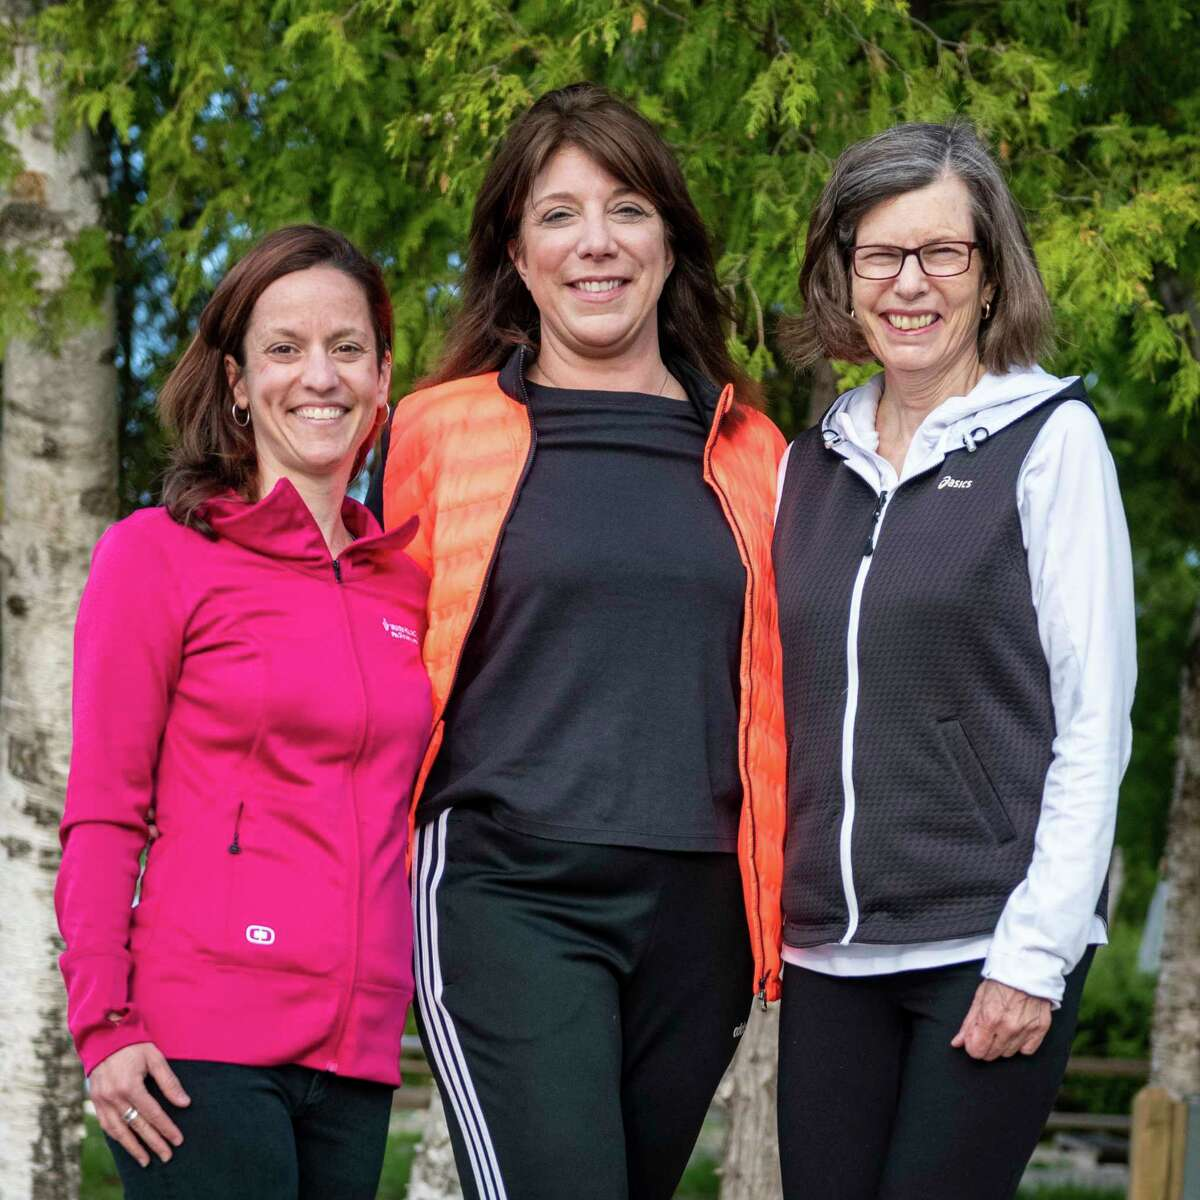 Paul Oliver Memorial Hospital Chief Medical Officer and Frankfort Medical Group primary care physician Dr. Nancy Smith,board member Michelle Russell and Adrienne Stephen Jones, DPT and POMH rehab director will compete in the Ironman 70.3. (Courtesy photo)